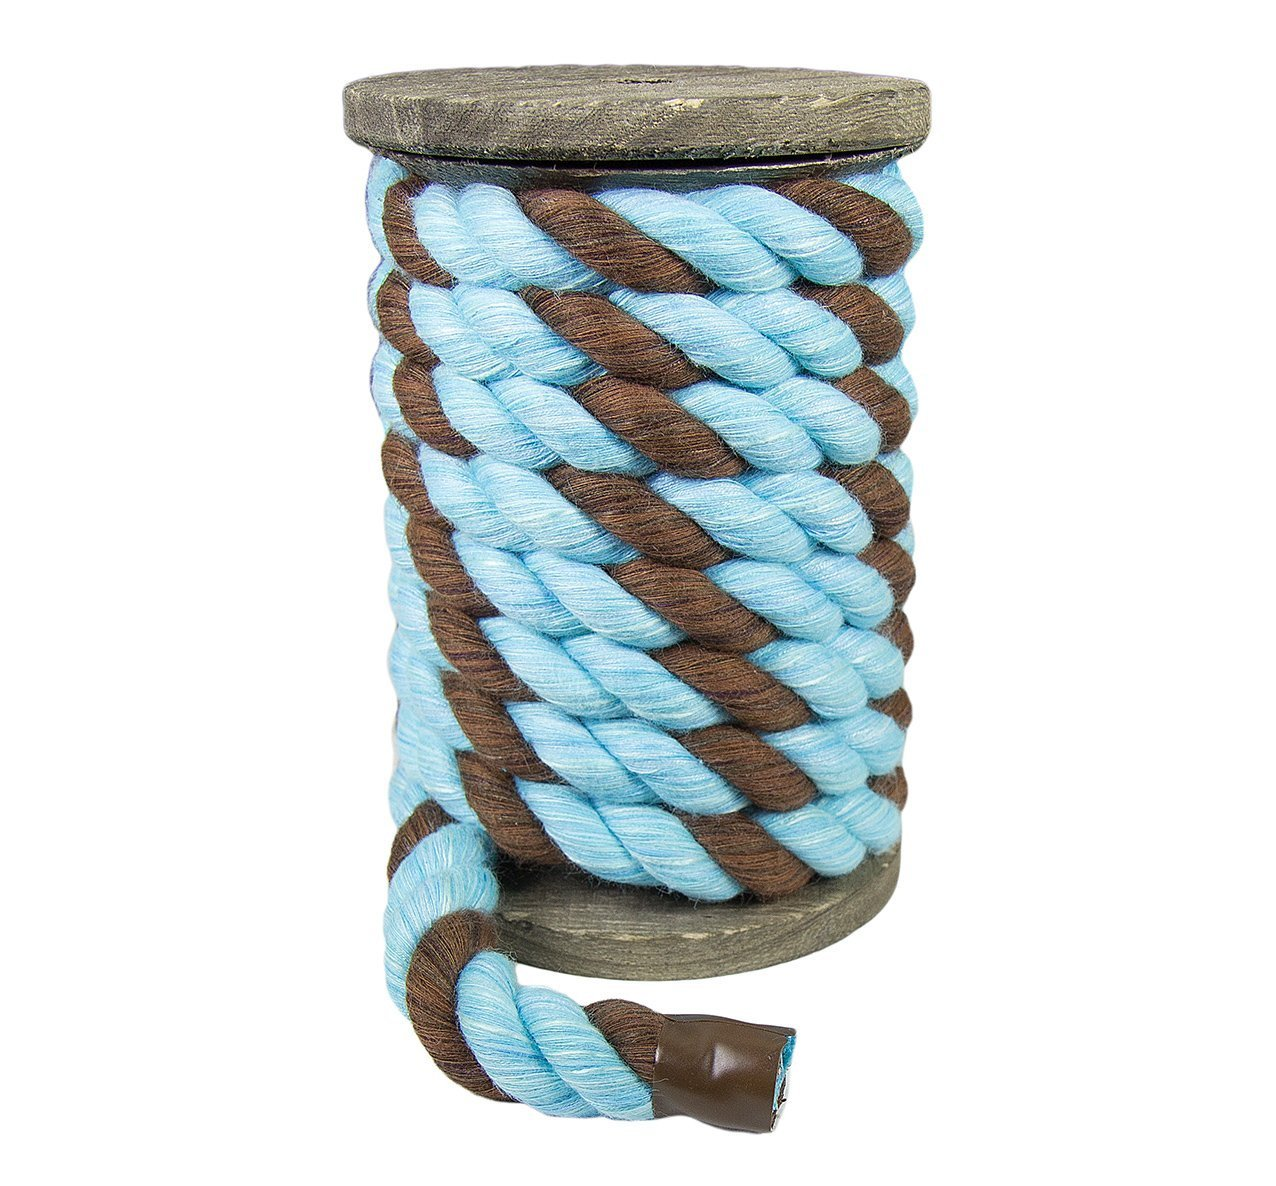 Macram/é and Indoor Outdoor Use Ravenox Colorful Twisted Cotton Rope Made in The USA Crafts Pet Toys D/écor by The Foot and Diameter Custom Color Triple-Strand Rope and Cordage for Sport